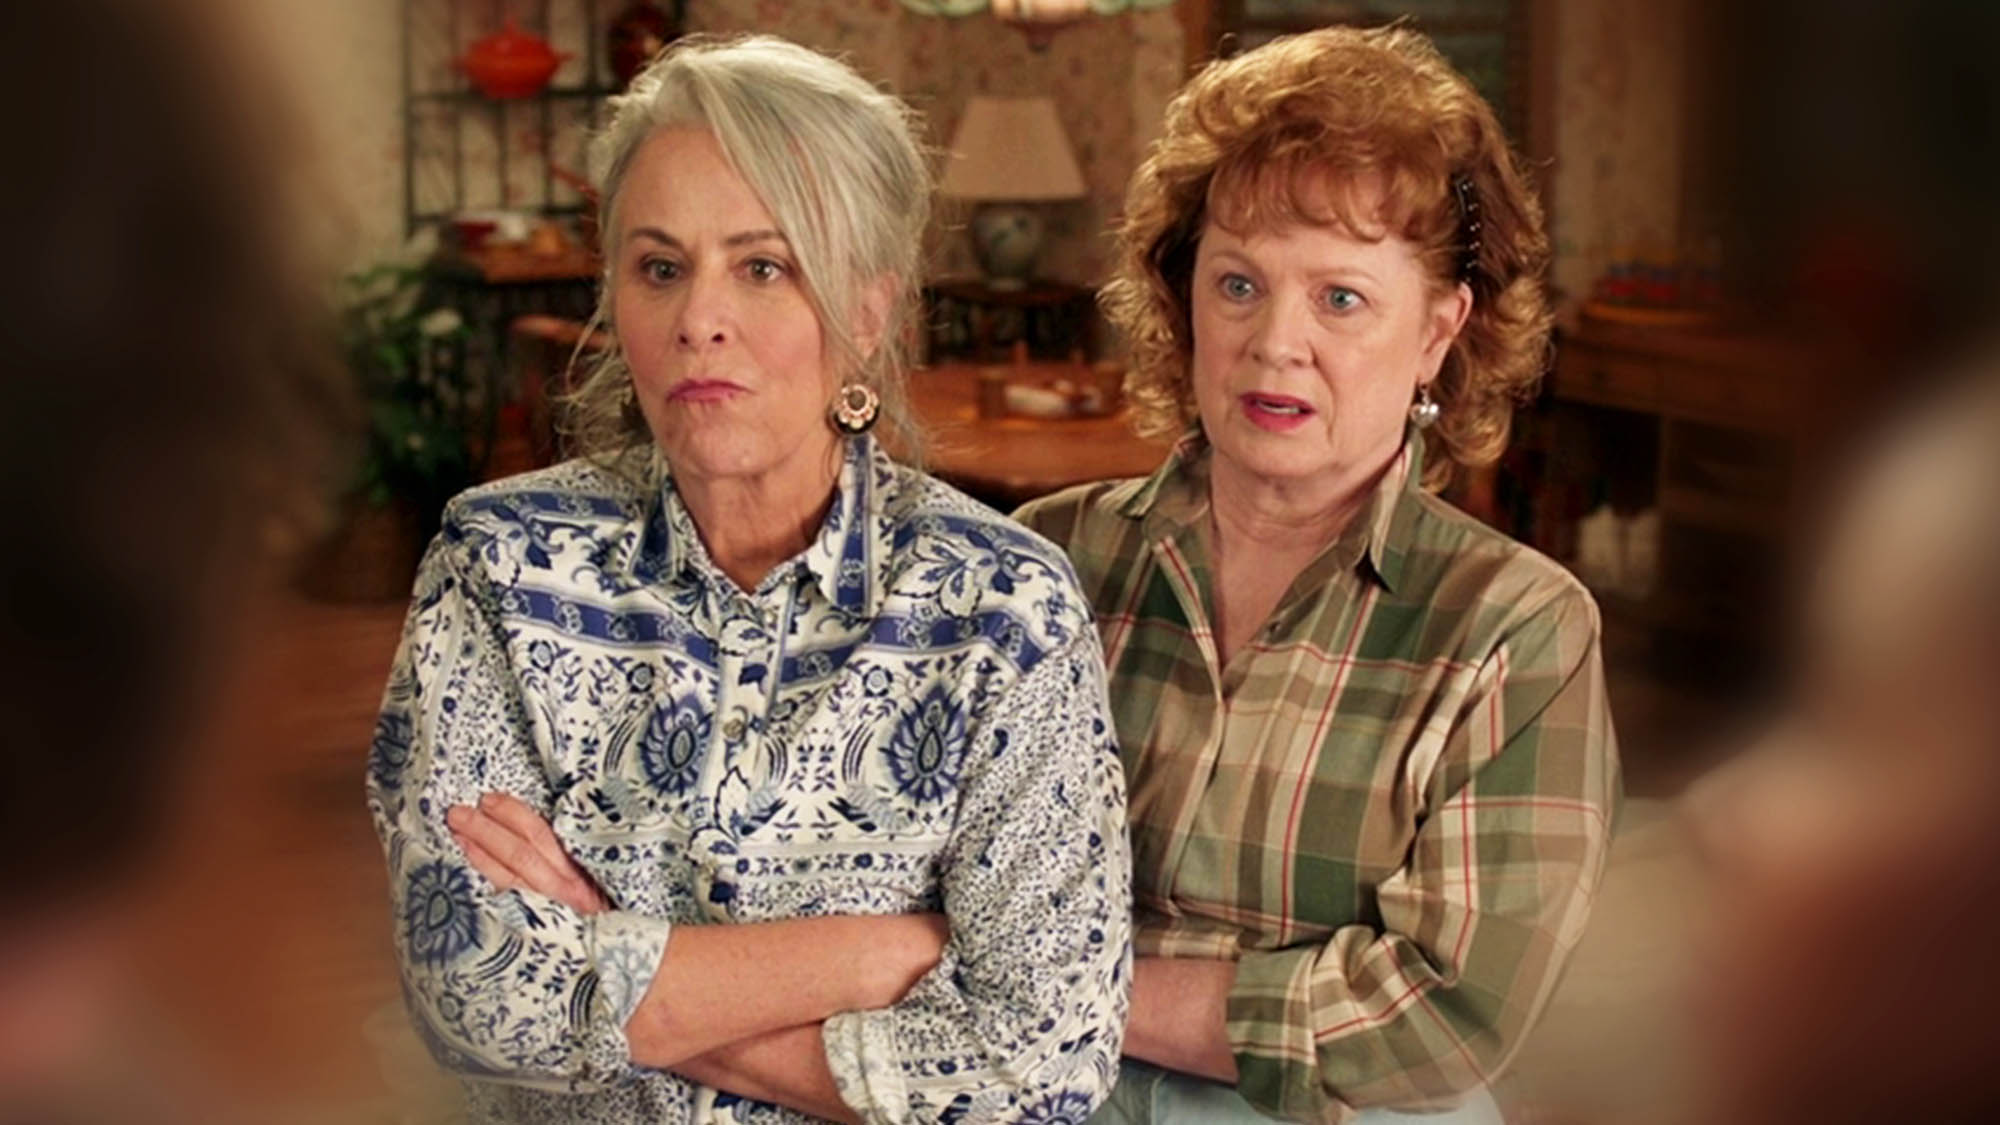 Jane Kaczmarek (Lois) et Meagan Fay (Gretchen) en couple dans <em>Mixed-ish</em>